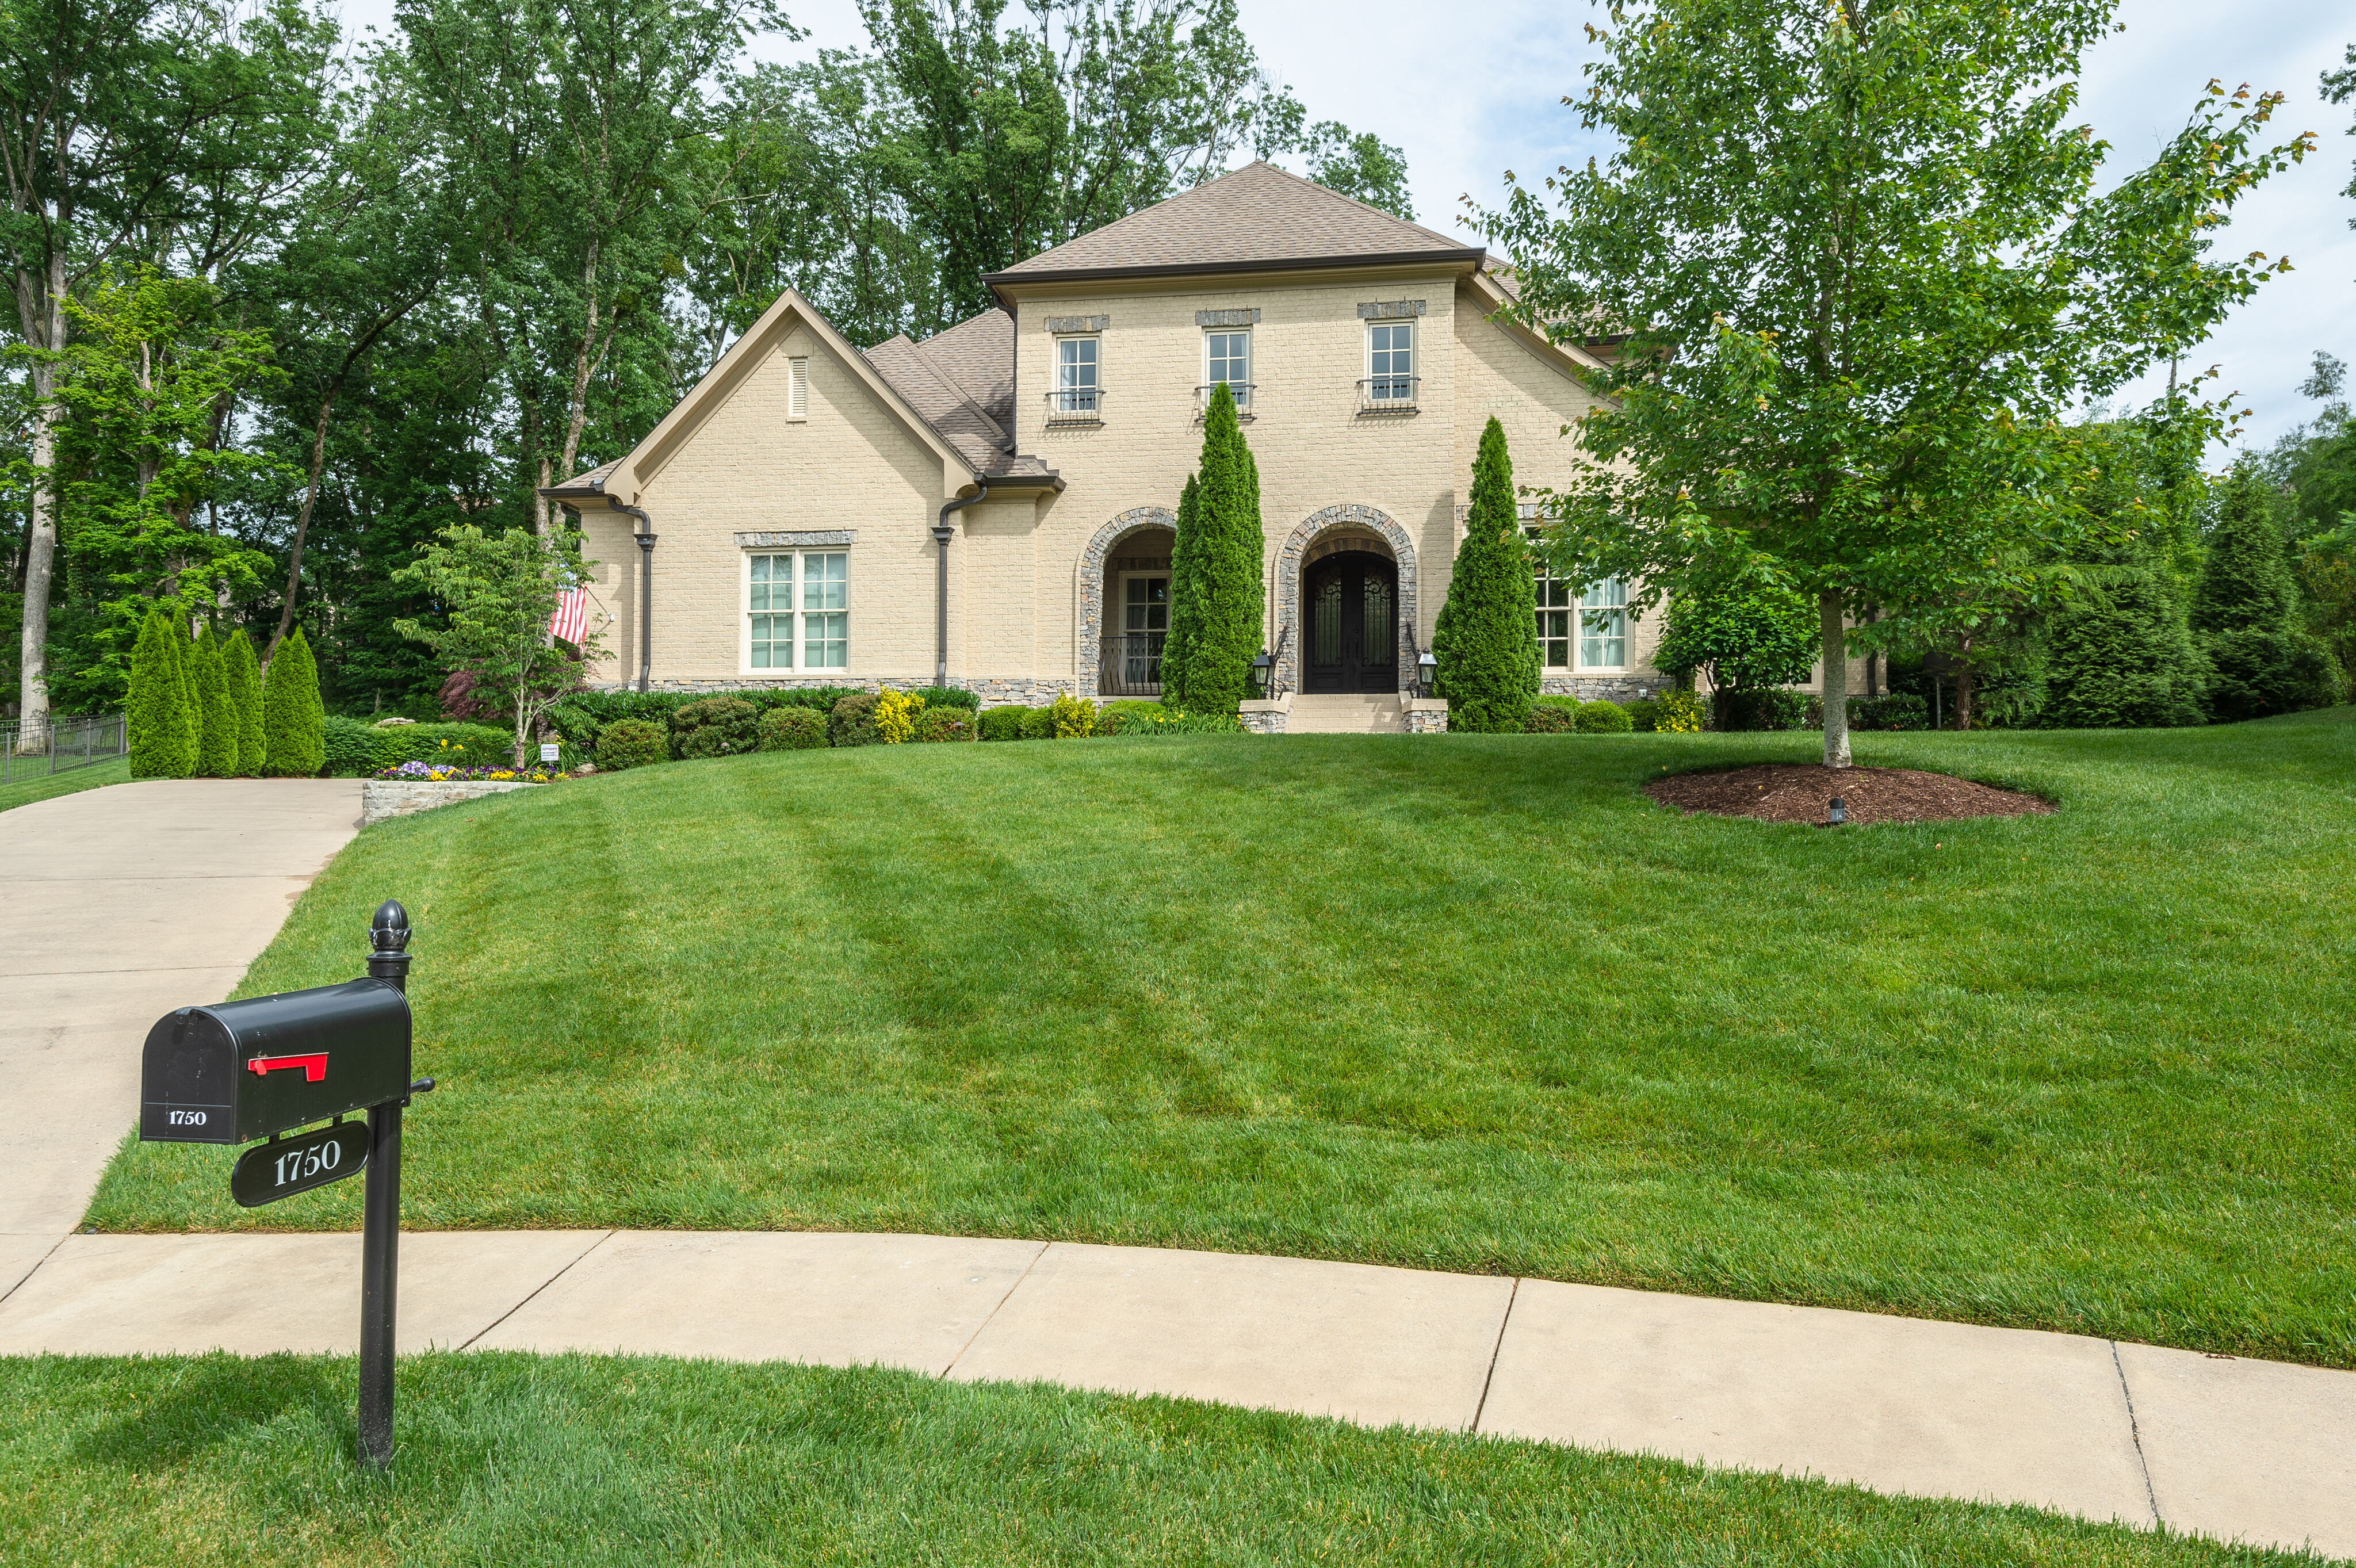 Single Family Home for sale in 1750 Tuscany Way, Brentwood, Tennessee ,37027